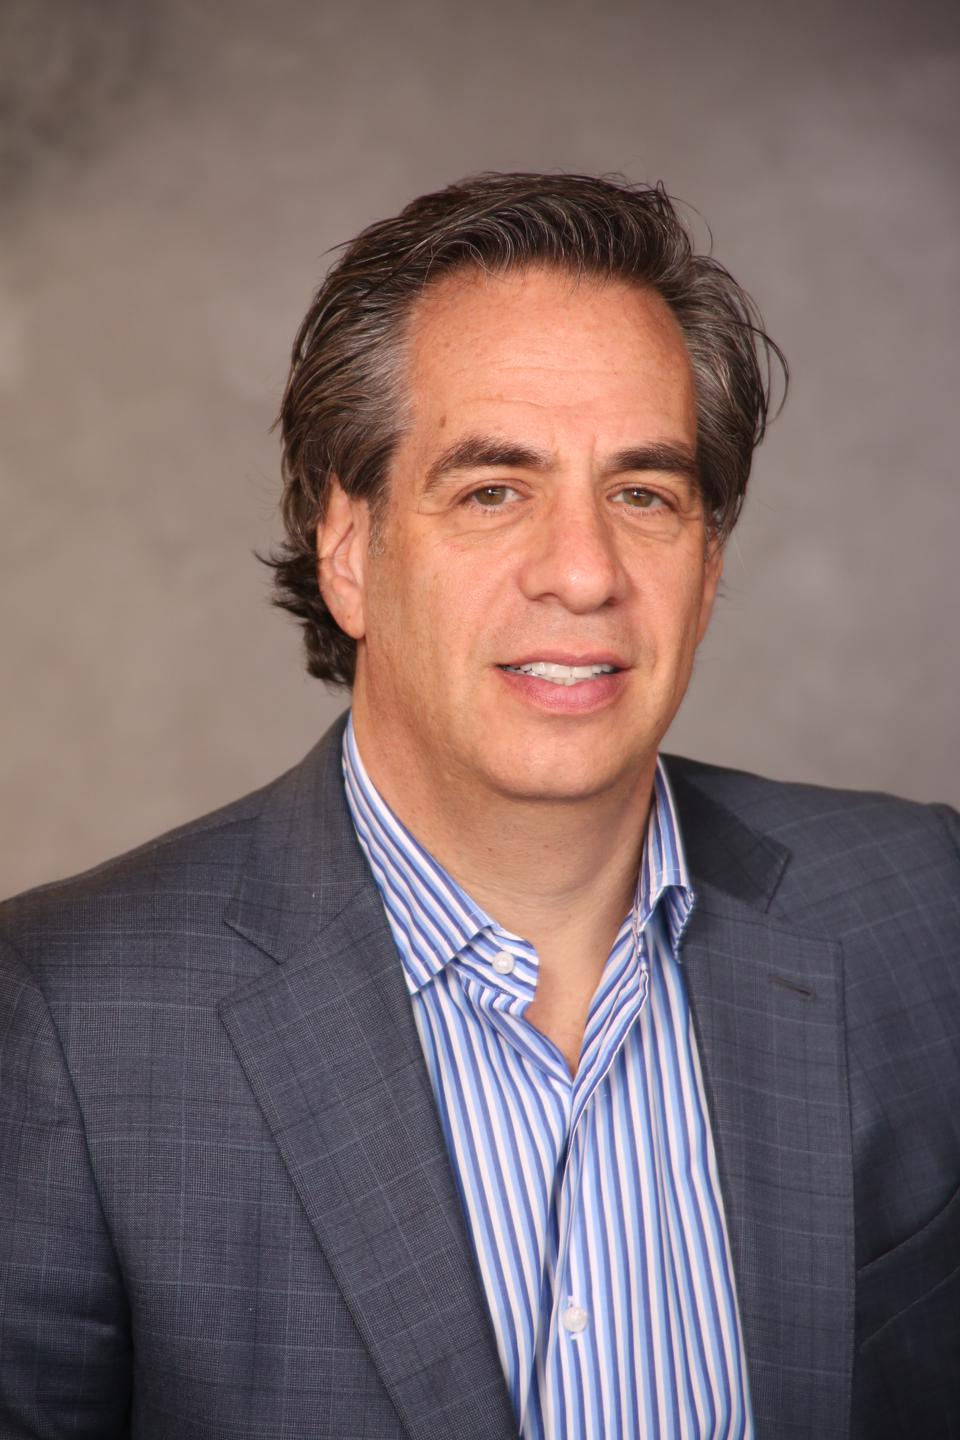 A man in a gray sport jacket and blue and white striped shirt.